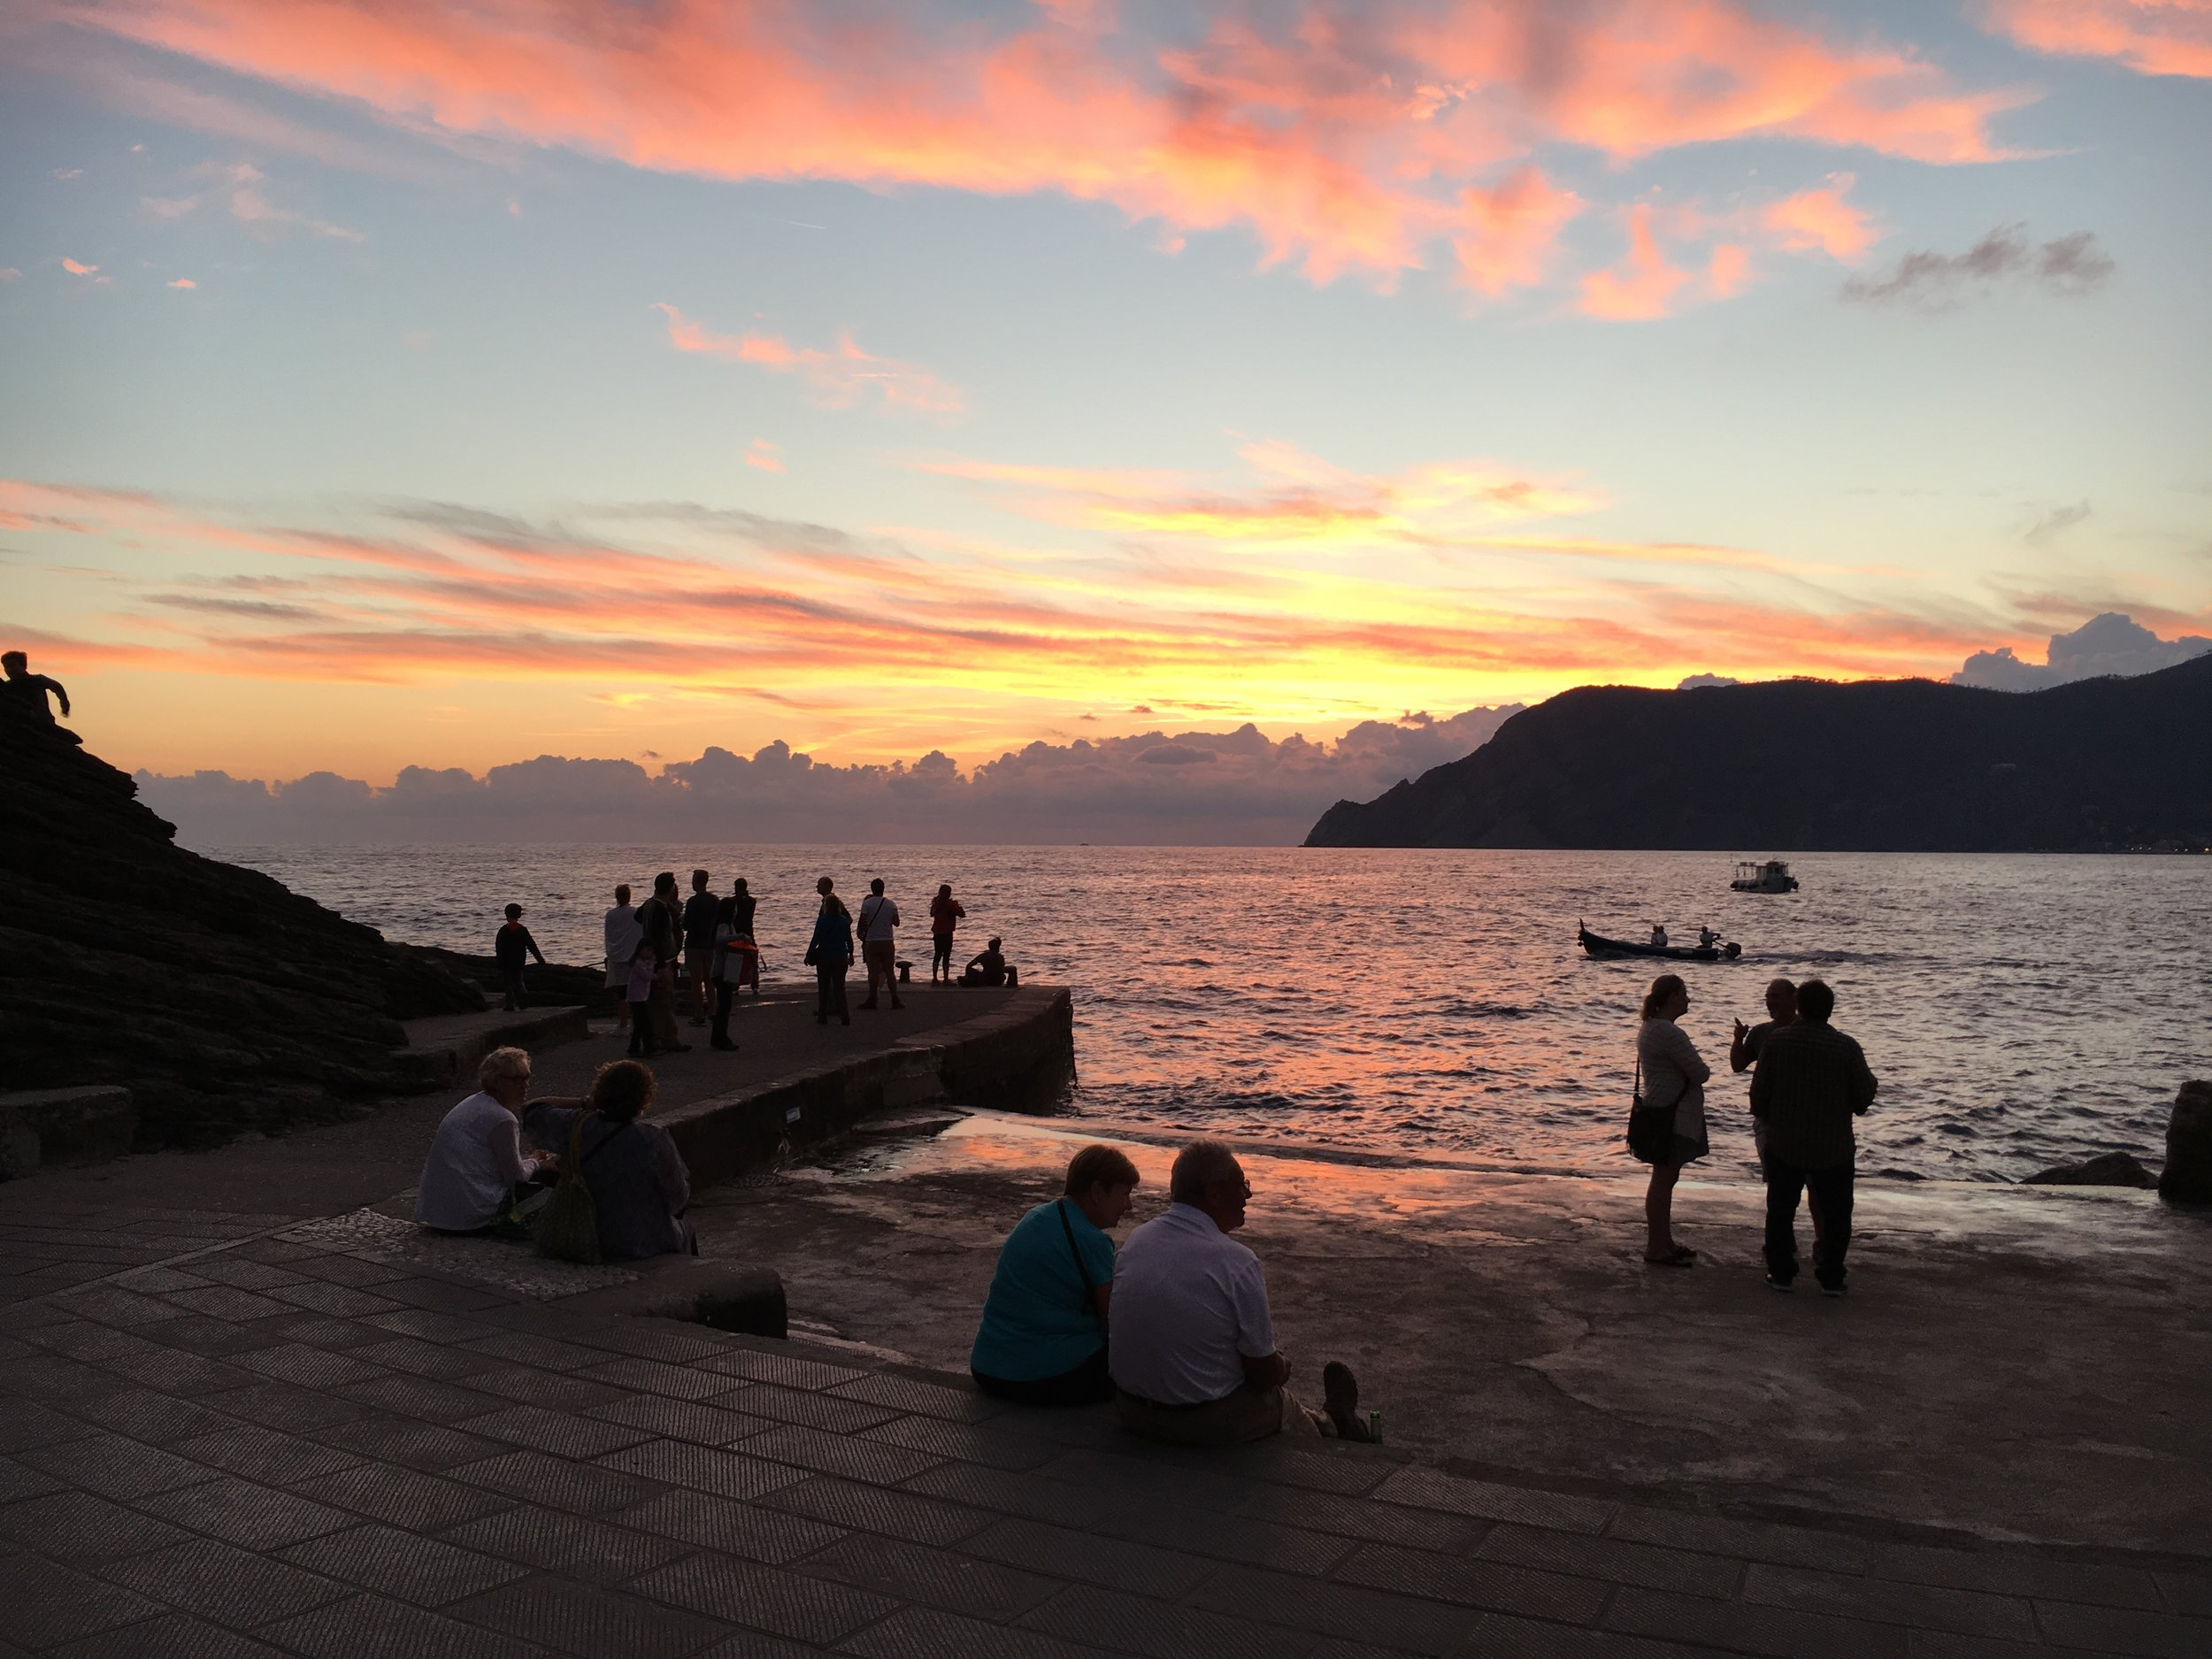 WATCH THE SUNSET FROM VERNAZZA